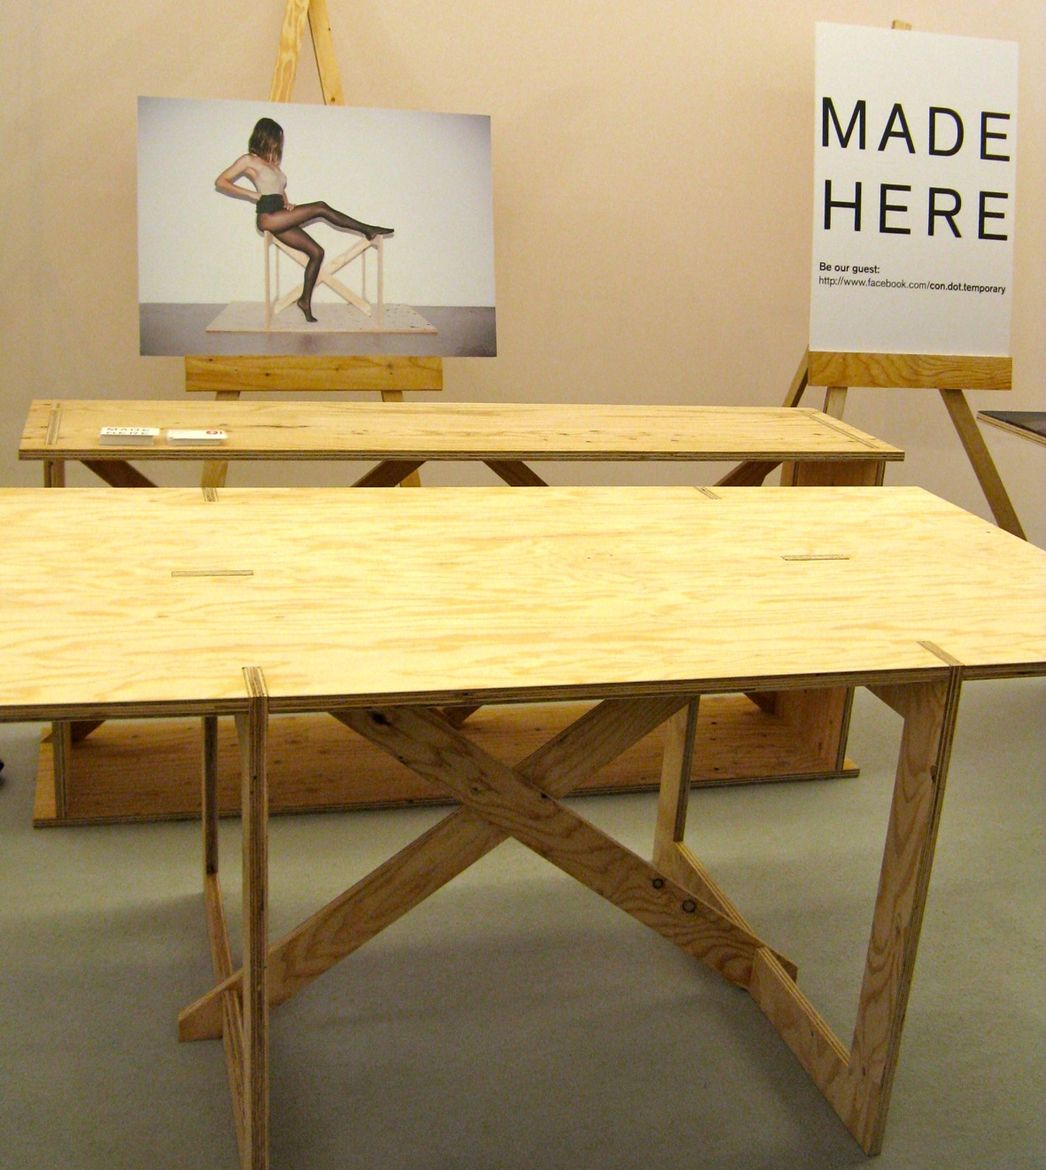 """This knock-down plywood table from Swiss designer <a href=""""http://www.colinschaelli.com"""">Colin Schaelli's</a> <a href=""""http://www.ownlineshop.com/ch_de/con-temporary-furniture.html"""">con.temporary</a> line is made in Japan, as the sign to the right indicat"""